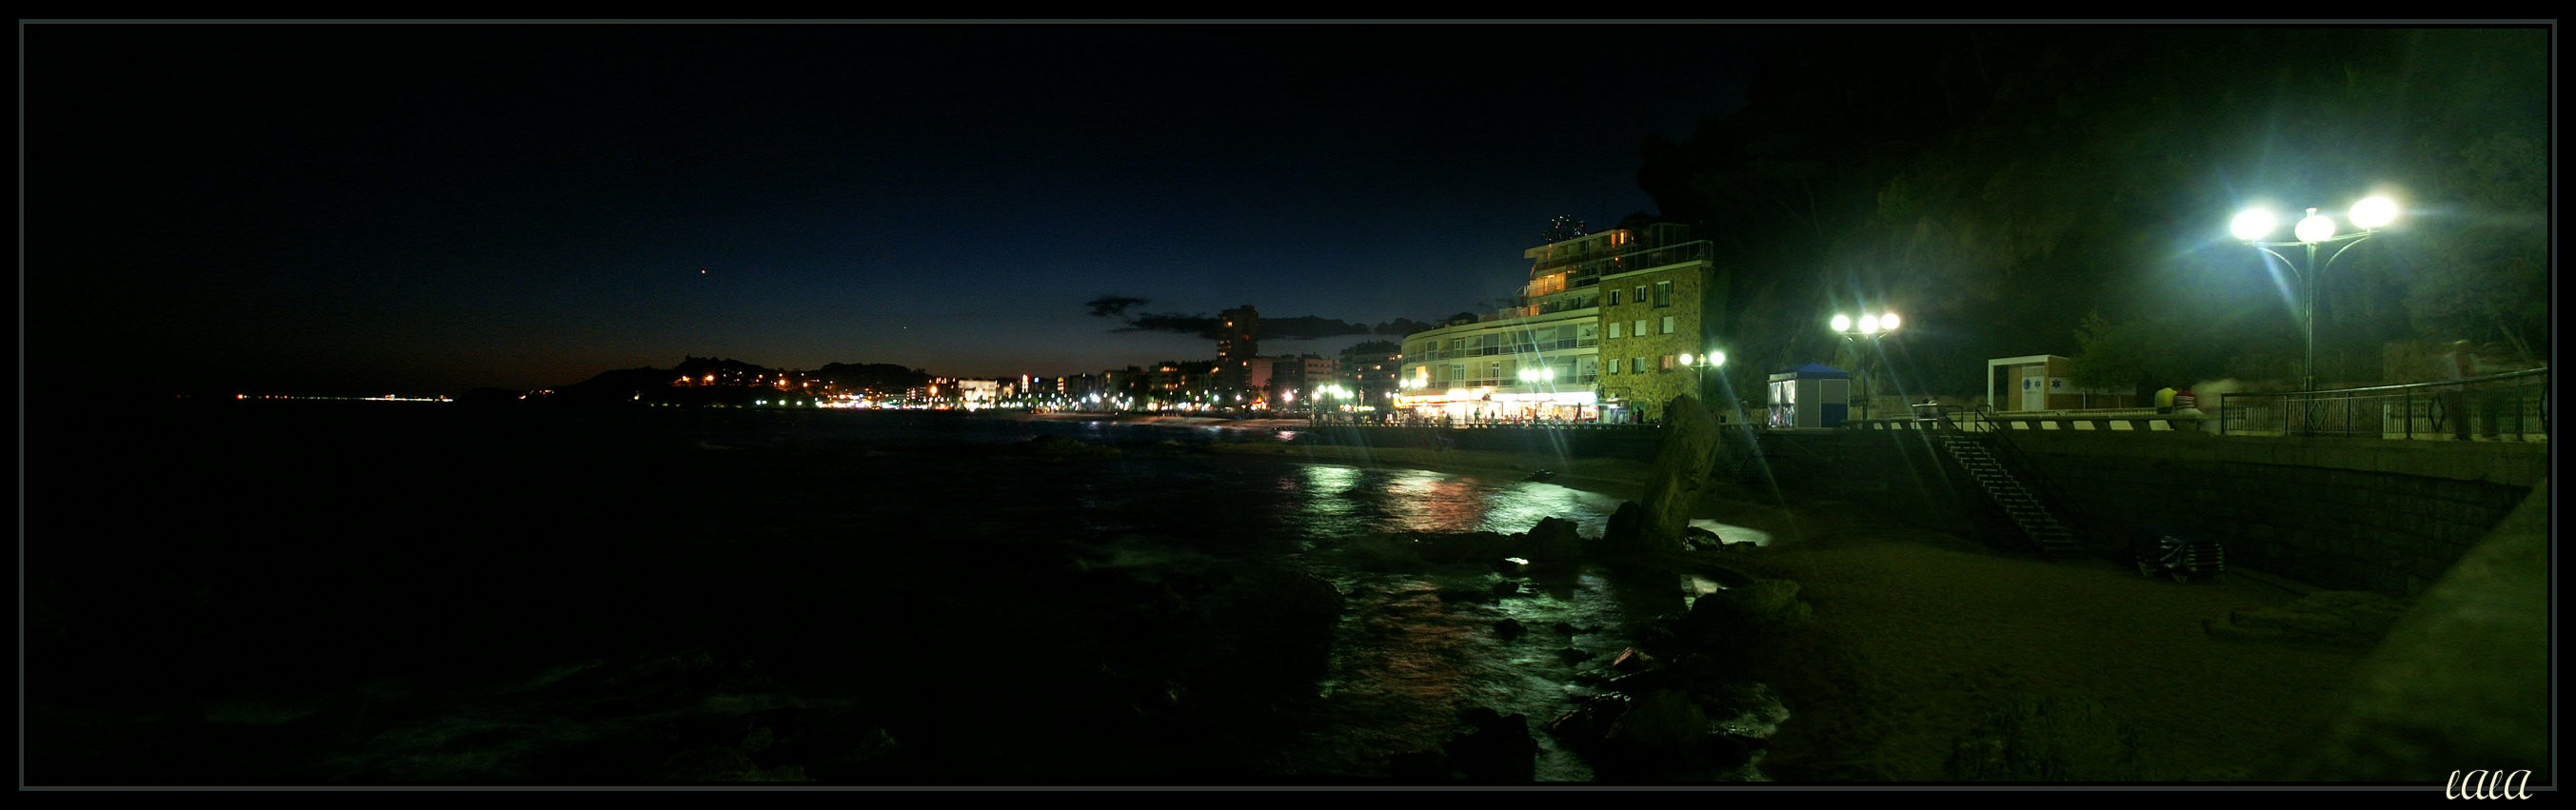 Foto playa Platja de Lloret. Lloret de Mar - Esti látvány - 2005 (Lloret at night)